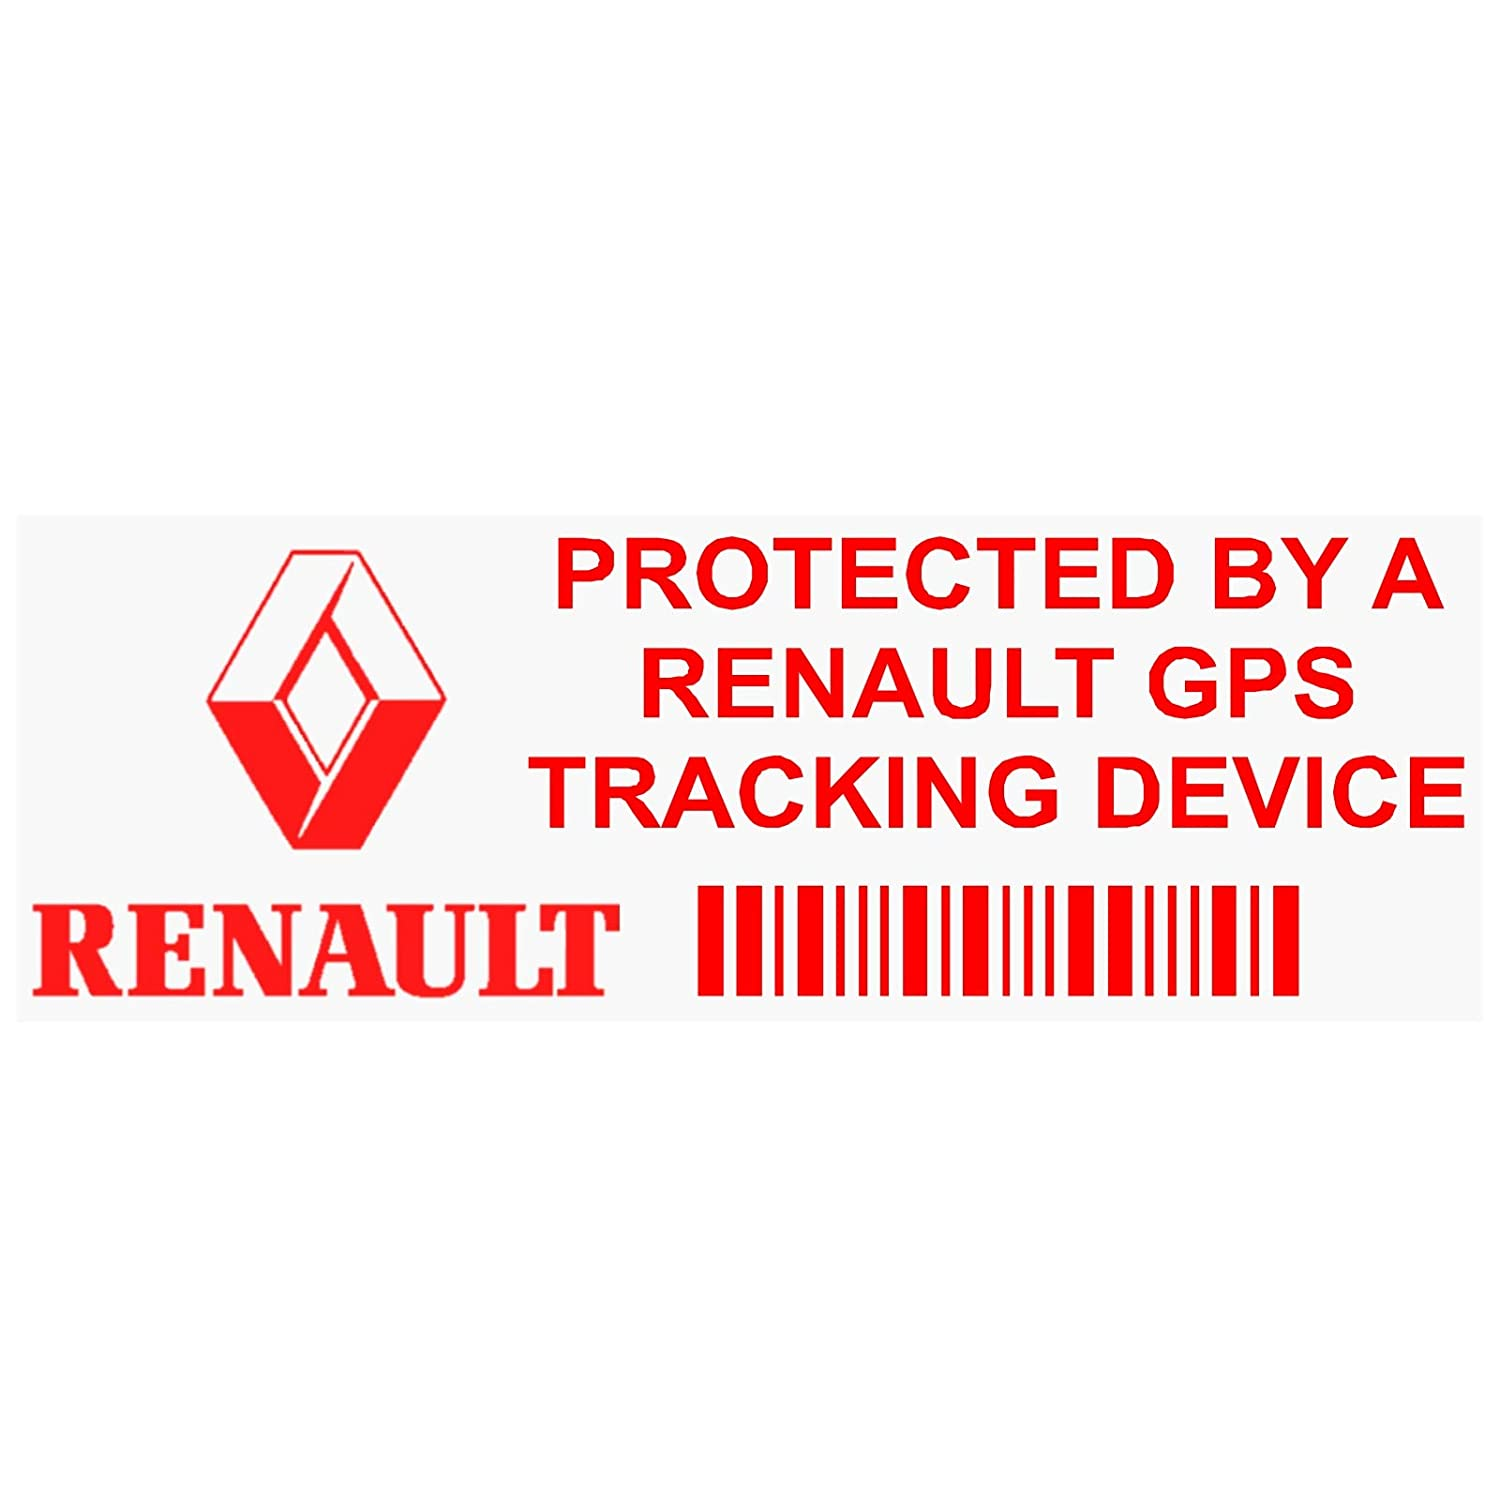 5  x pprenaultgpsred GPS rot Tracking Gerä t Sicherheit Fenster Aufkleber 87  x 30  mm-car, Van Alarm Tracker Platinum Place